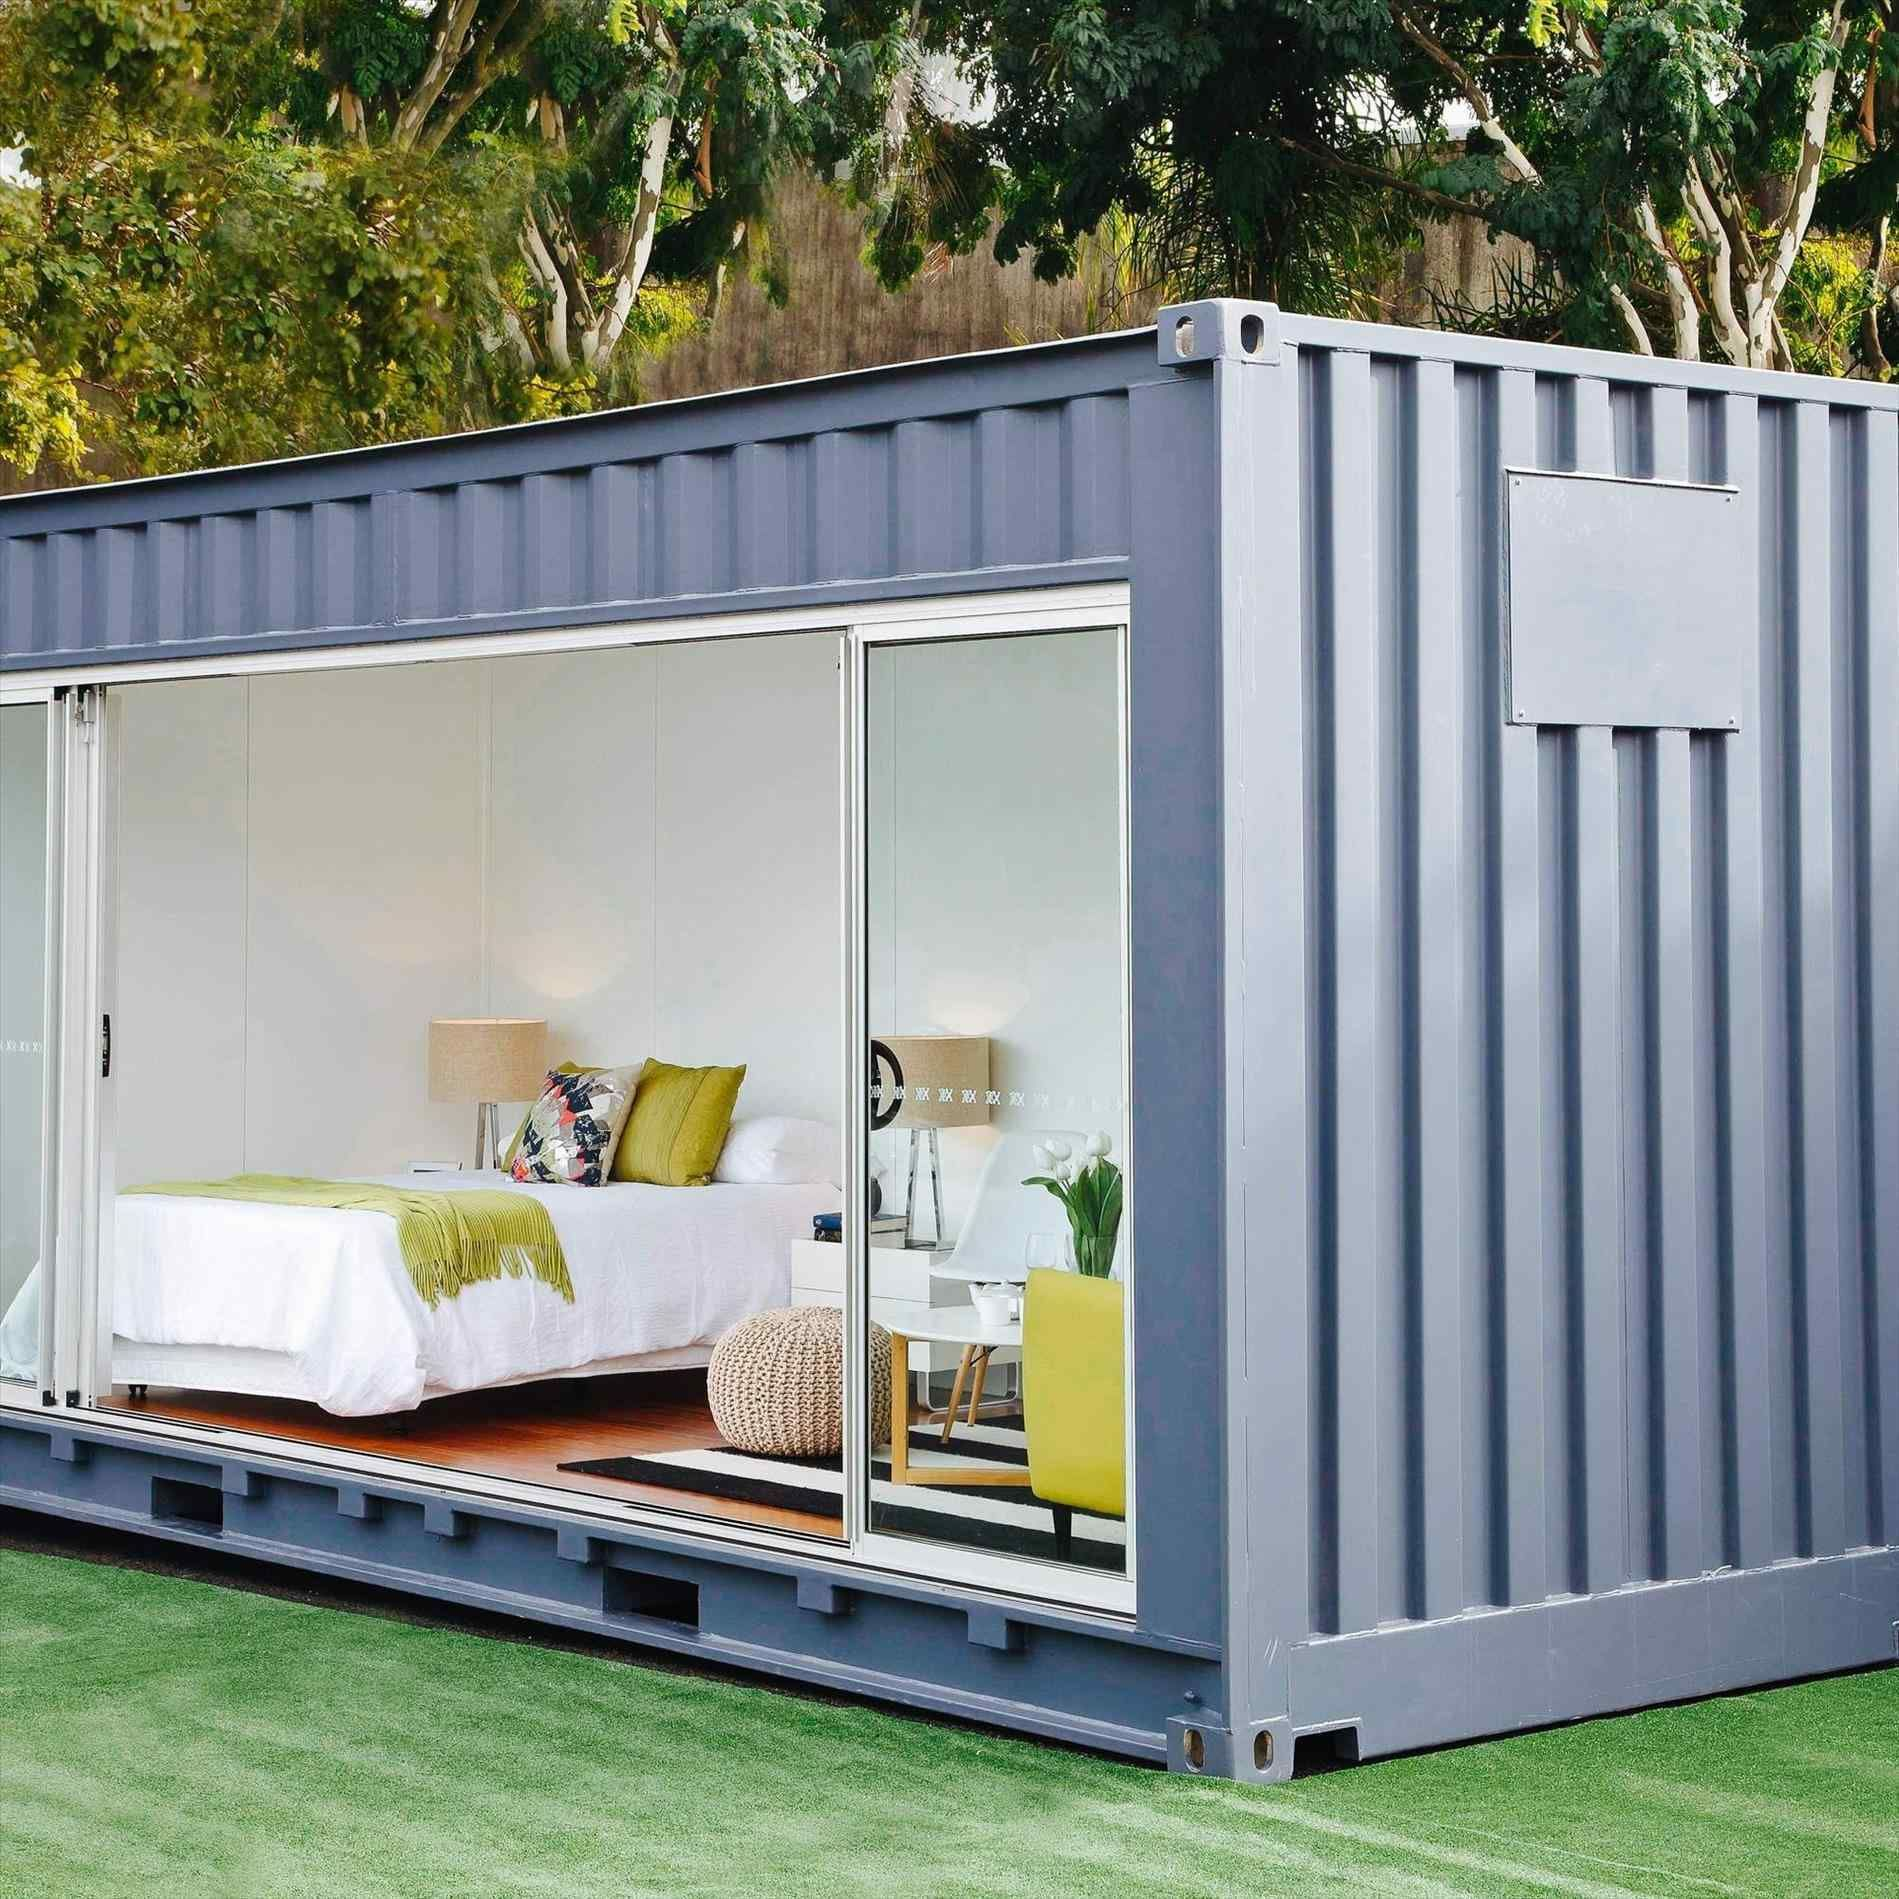 18 Ideas Container House Ideas Cabins Shipping Containers For Storage Containers Made Into Homes Container House Plans Container House Shipping Container Homes